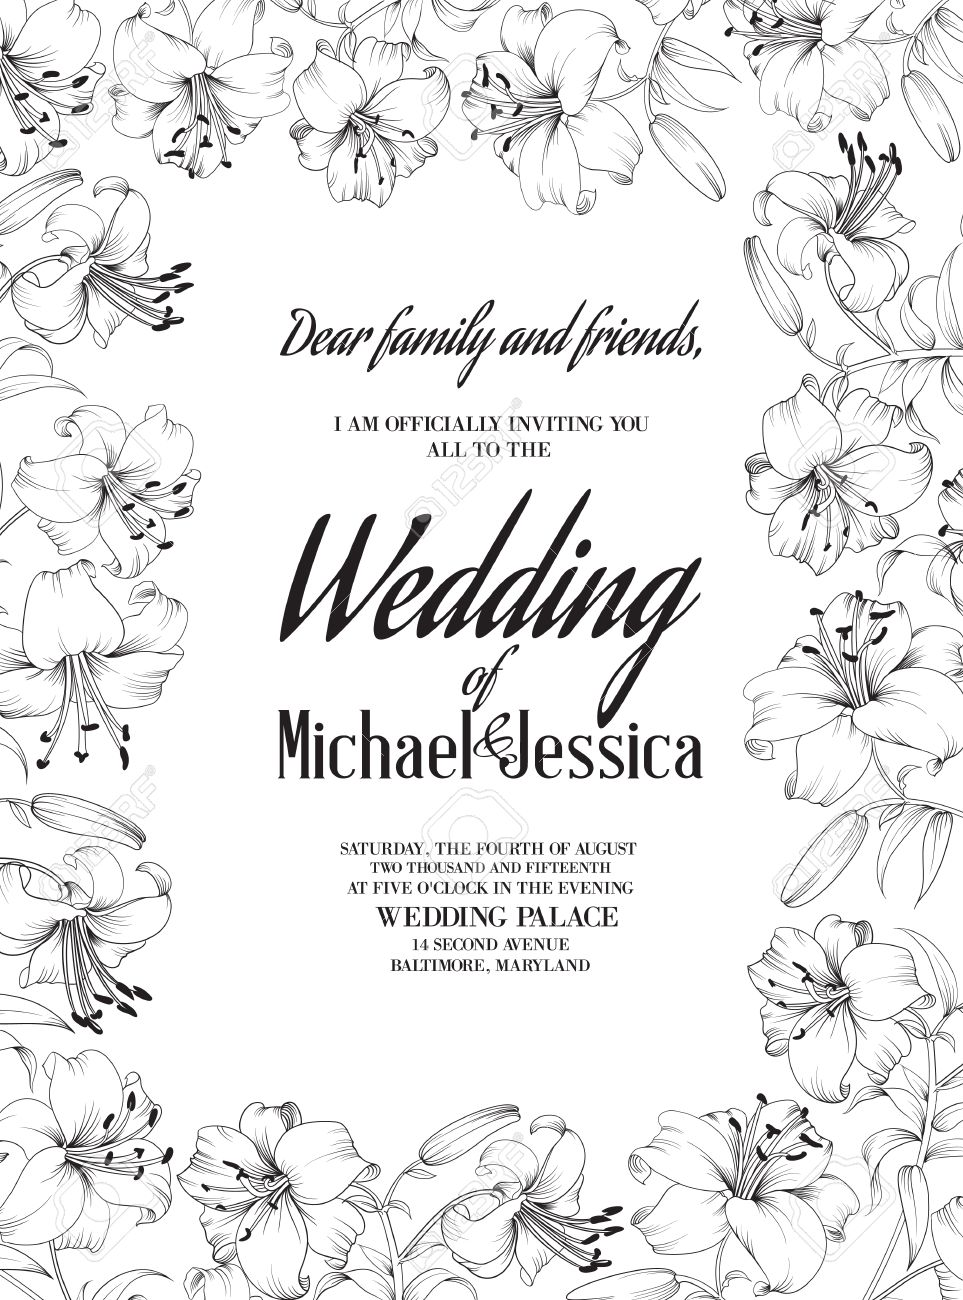 wedding card with lily flowers. invitation card template with